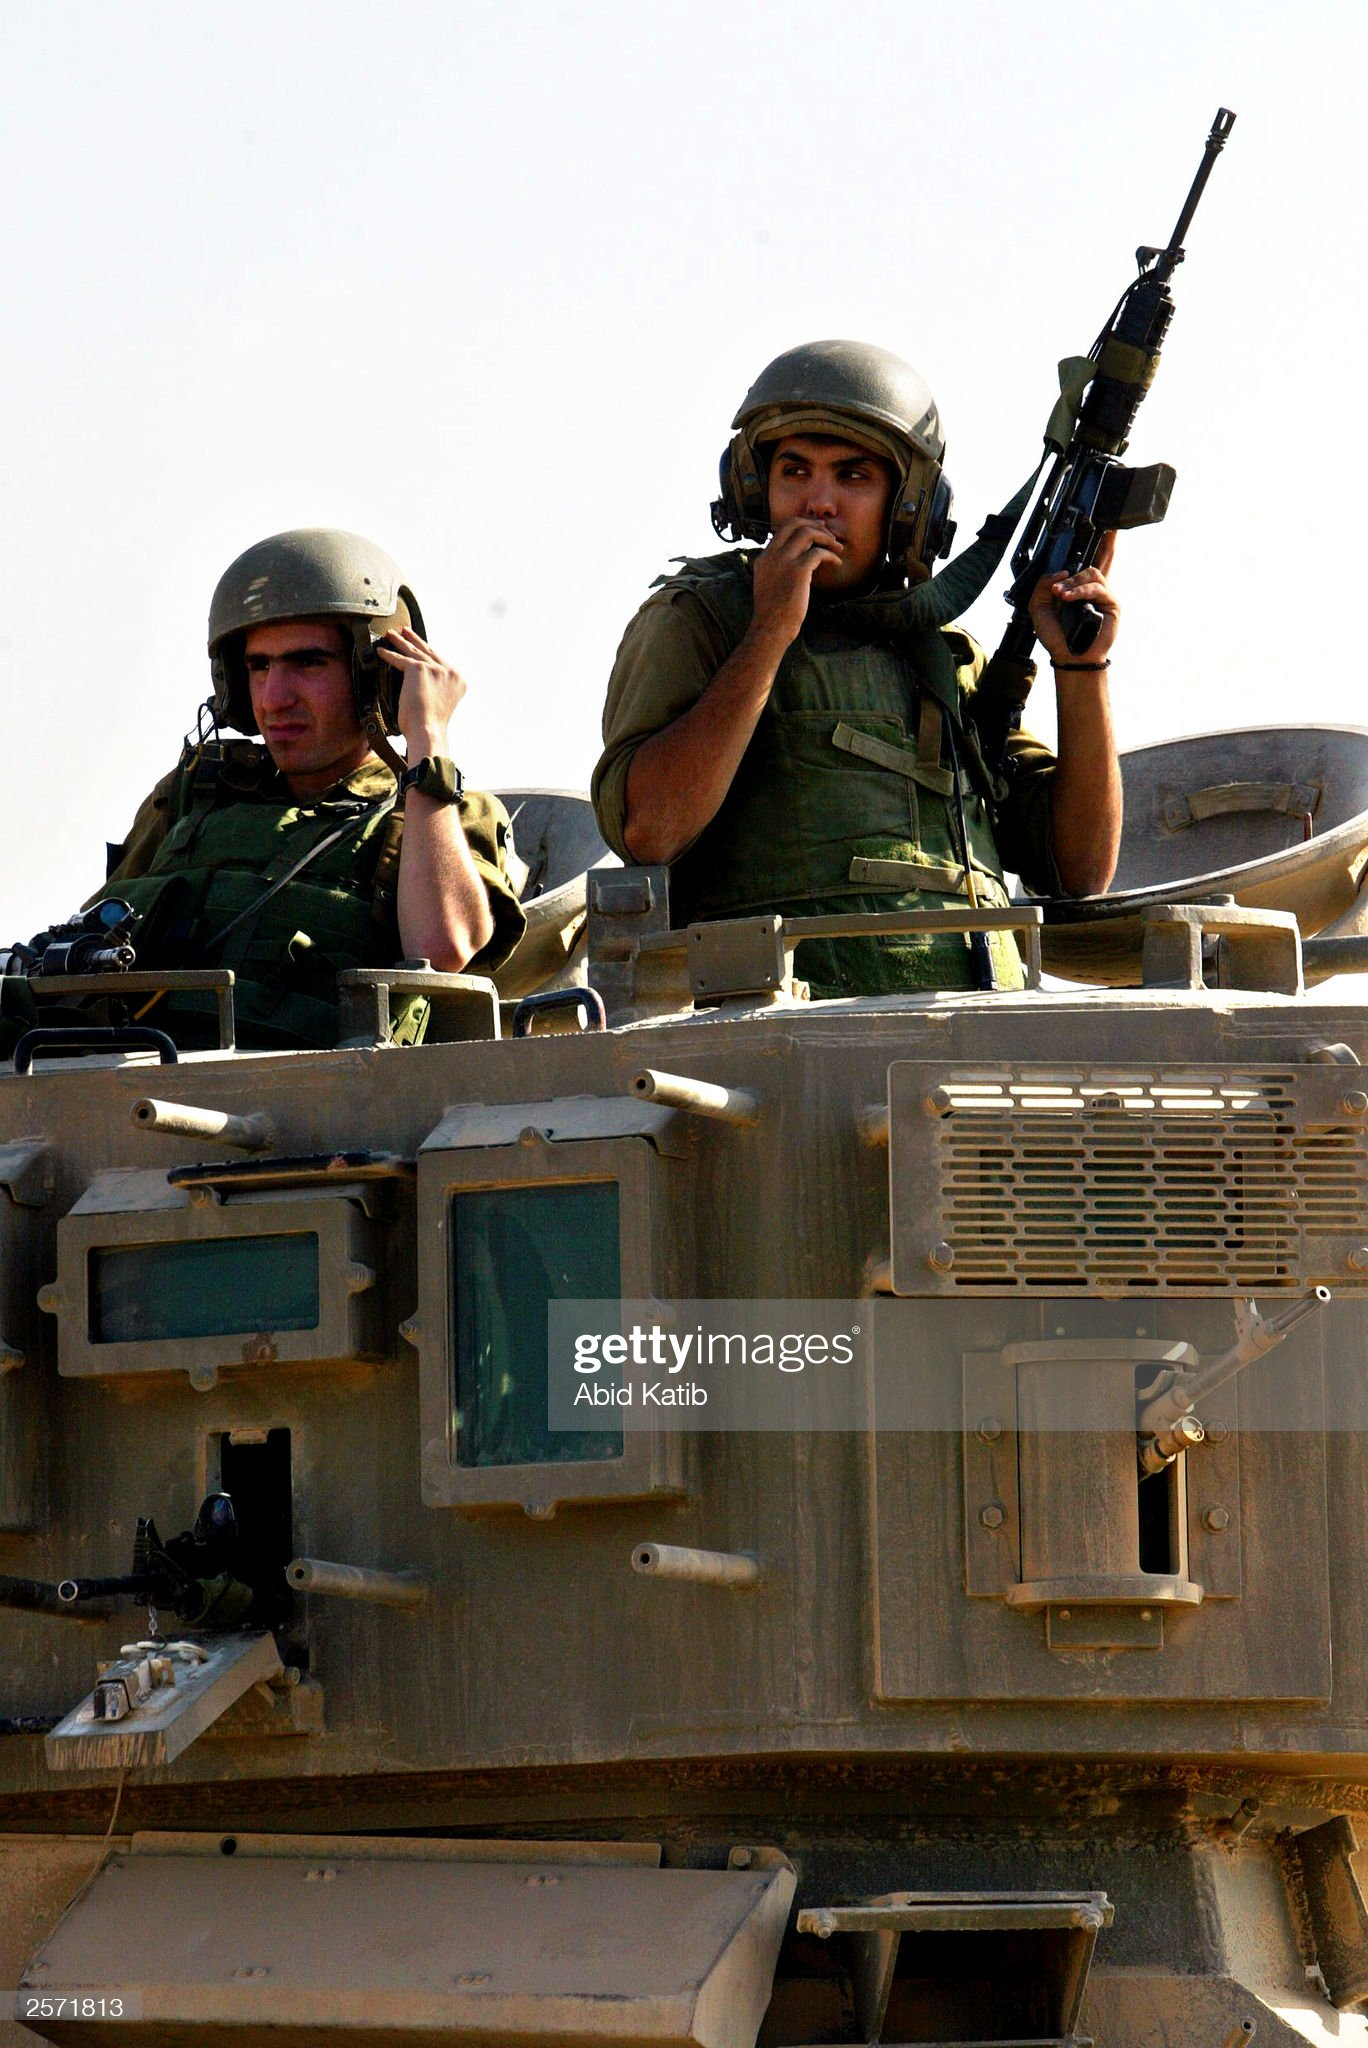 https://media.gettyimages.com/photos/israeli-soldiers-sit-in-their-tank-as-they-reblock-the-junction-on-picture-id2571813?s=2048x2048